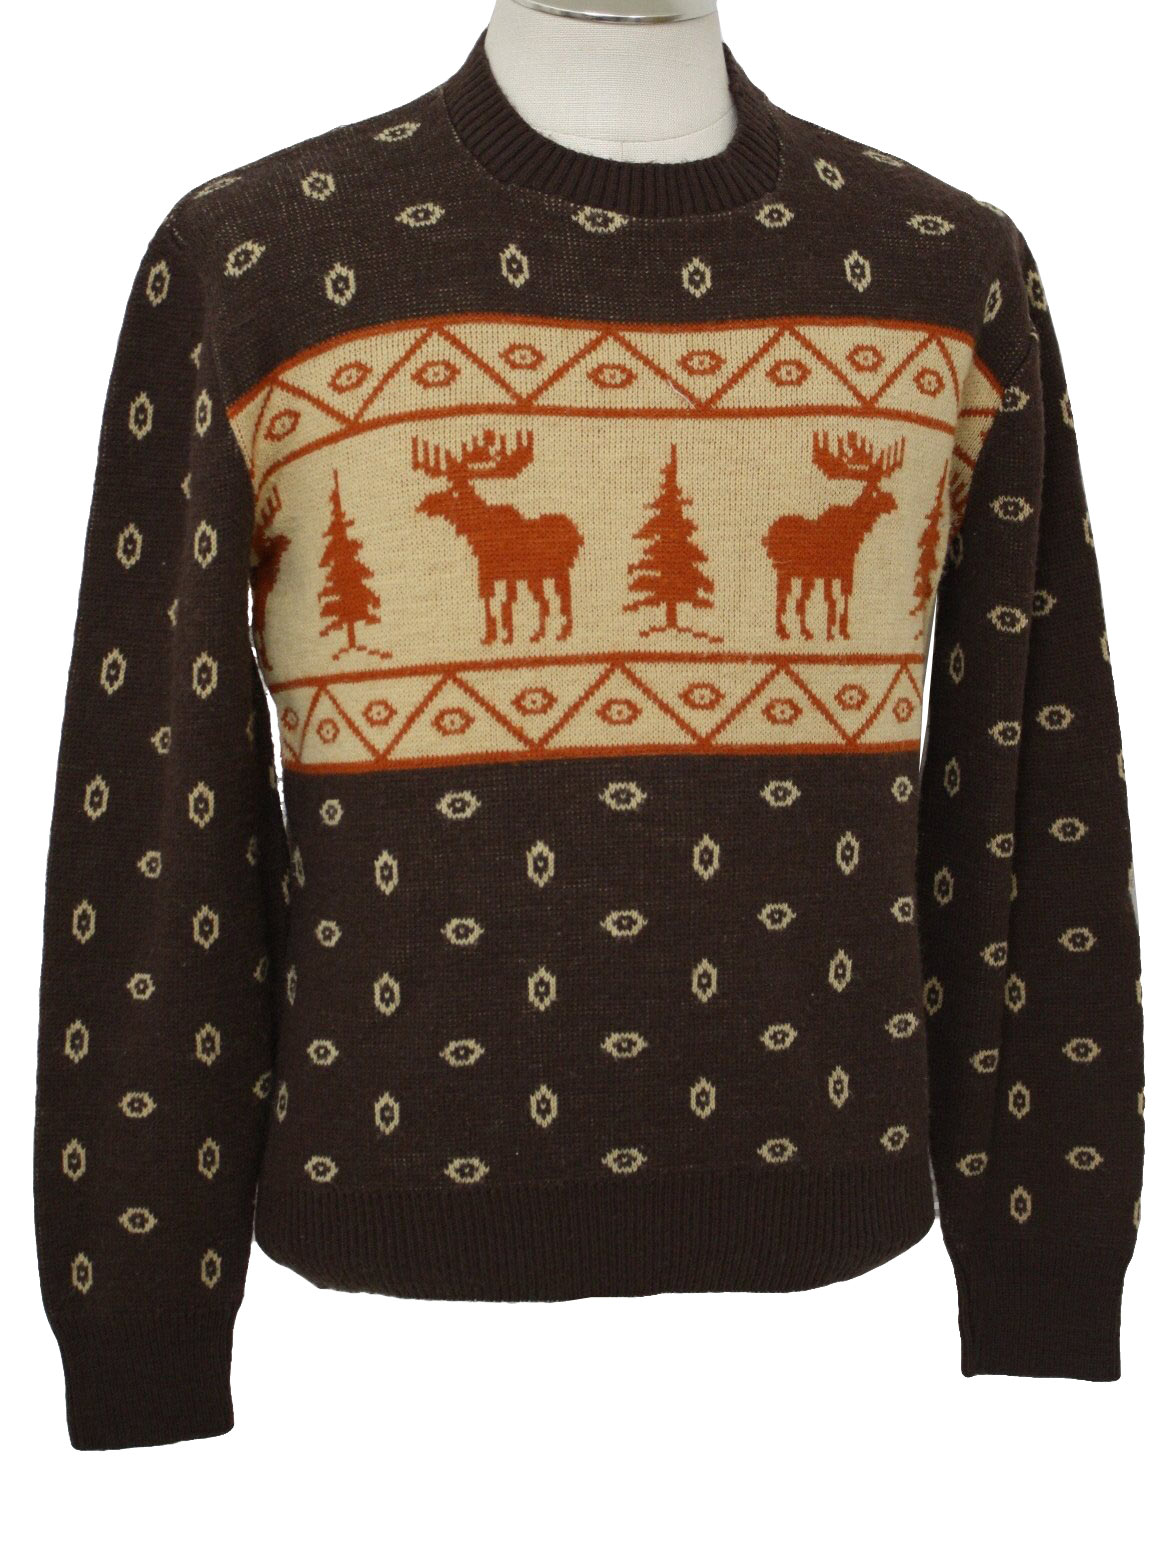 Mens Christmas Themed Ski Sweater: 40s style (made in 70s ...